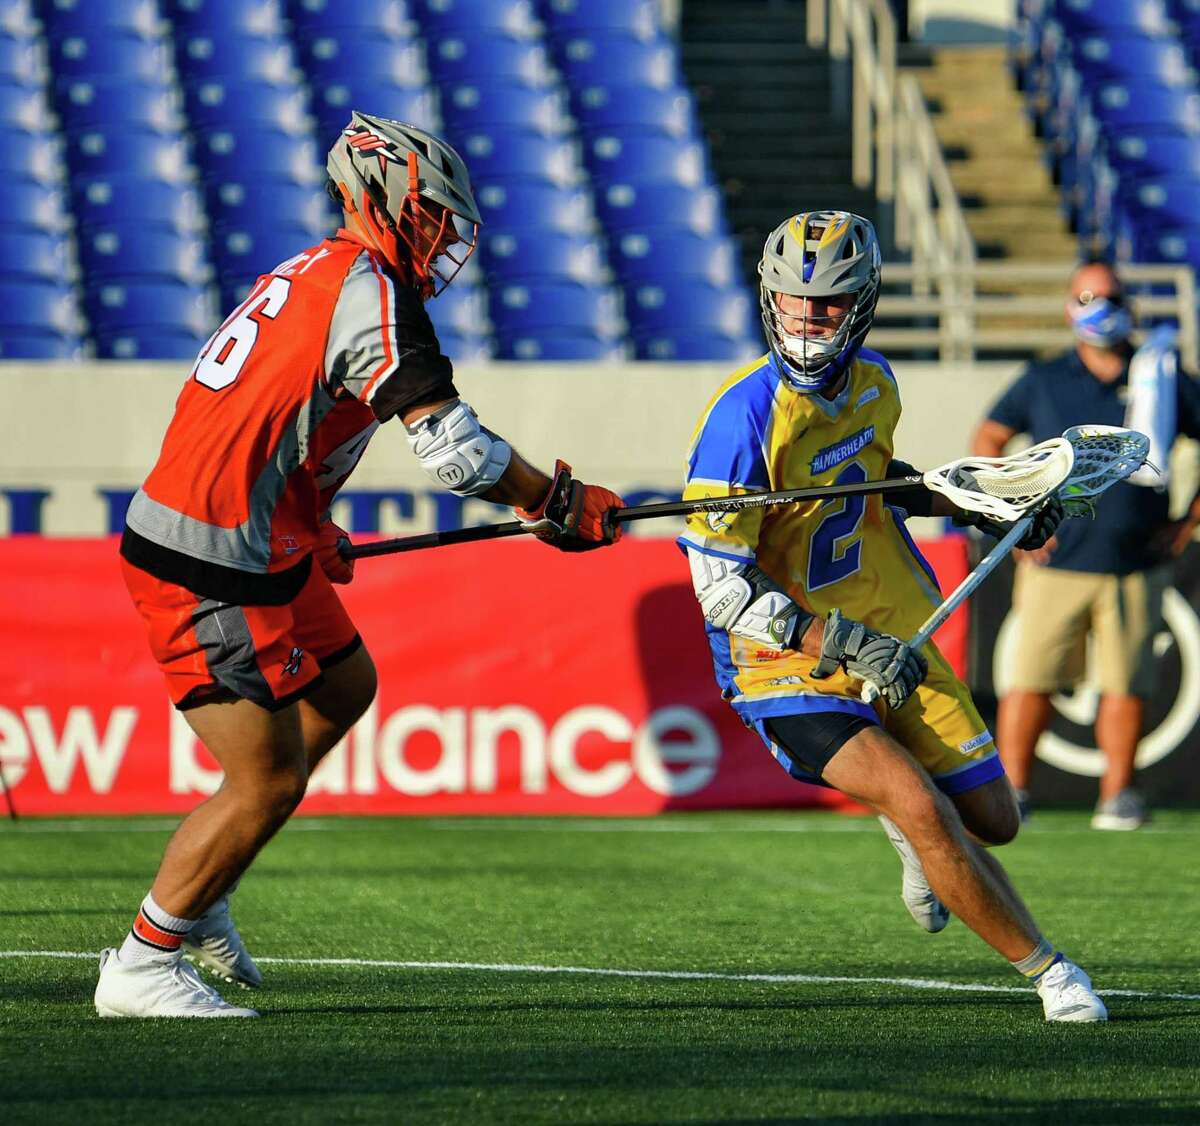 New Canaan's Michael Kraus made his Major League Lacrosse debut in the Connecticut Hammerheads loss to Denver